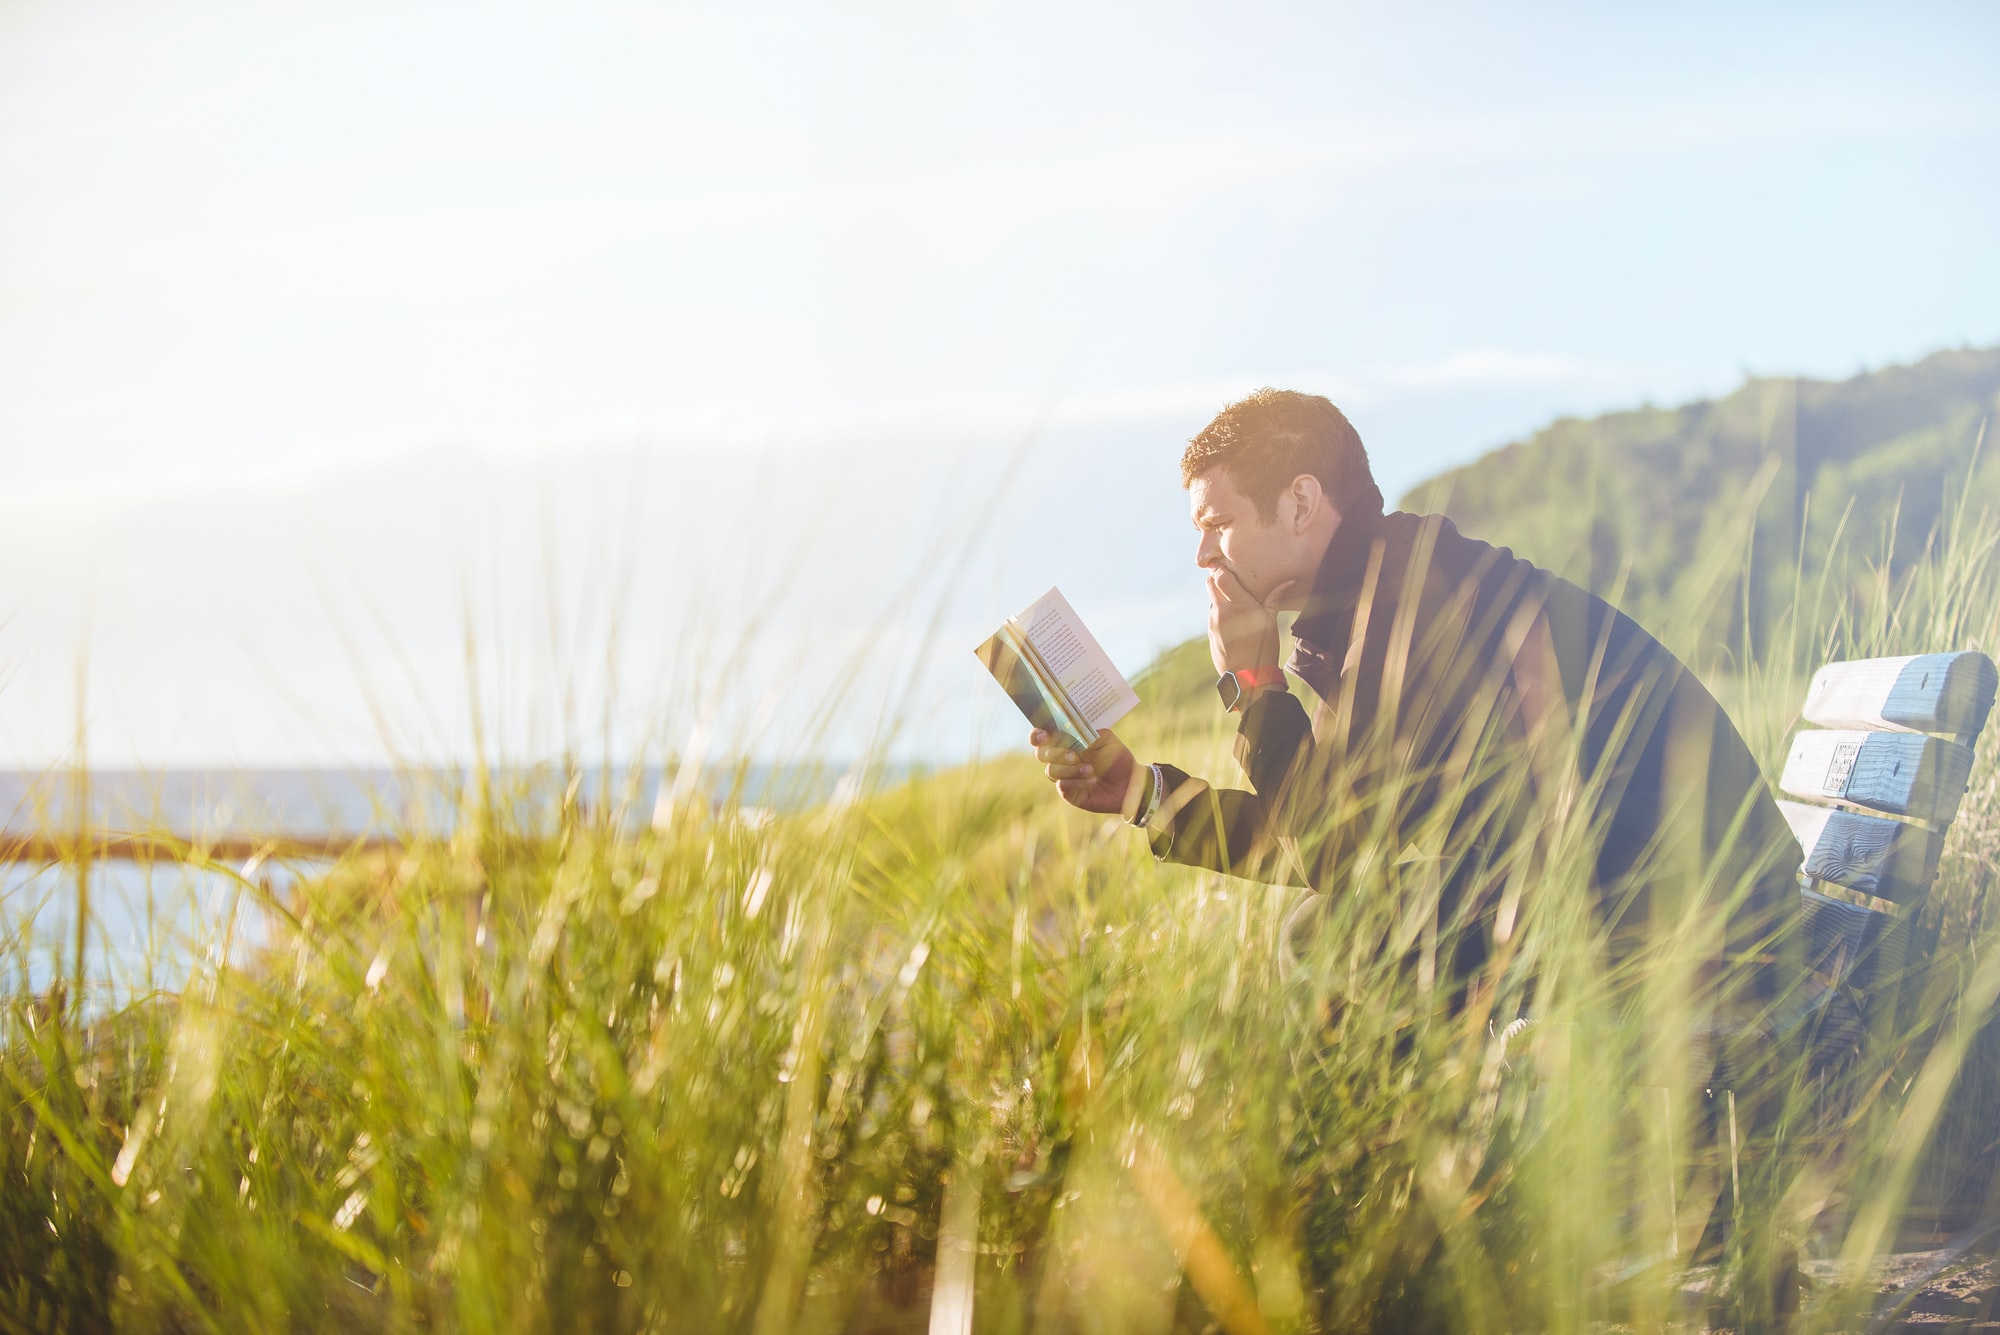 Reading in a meadow